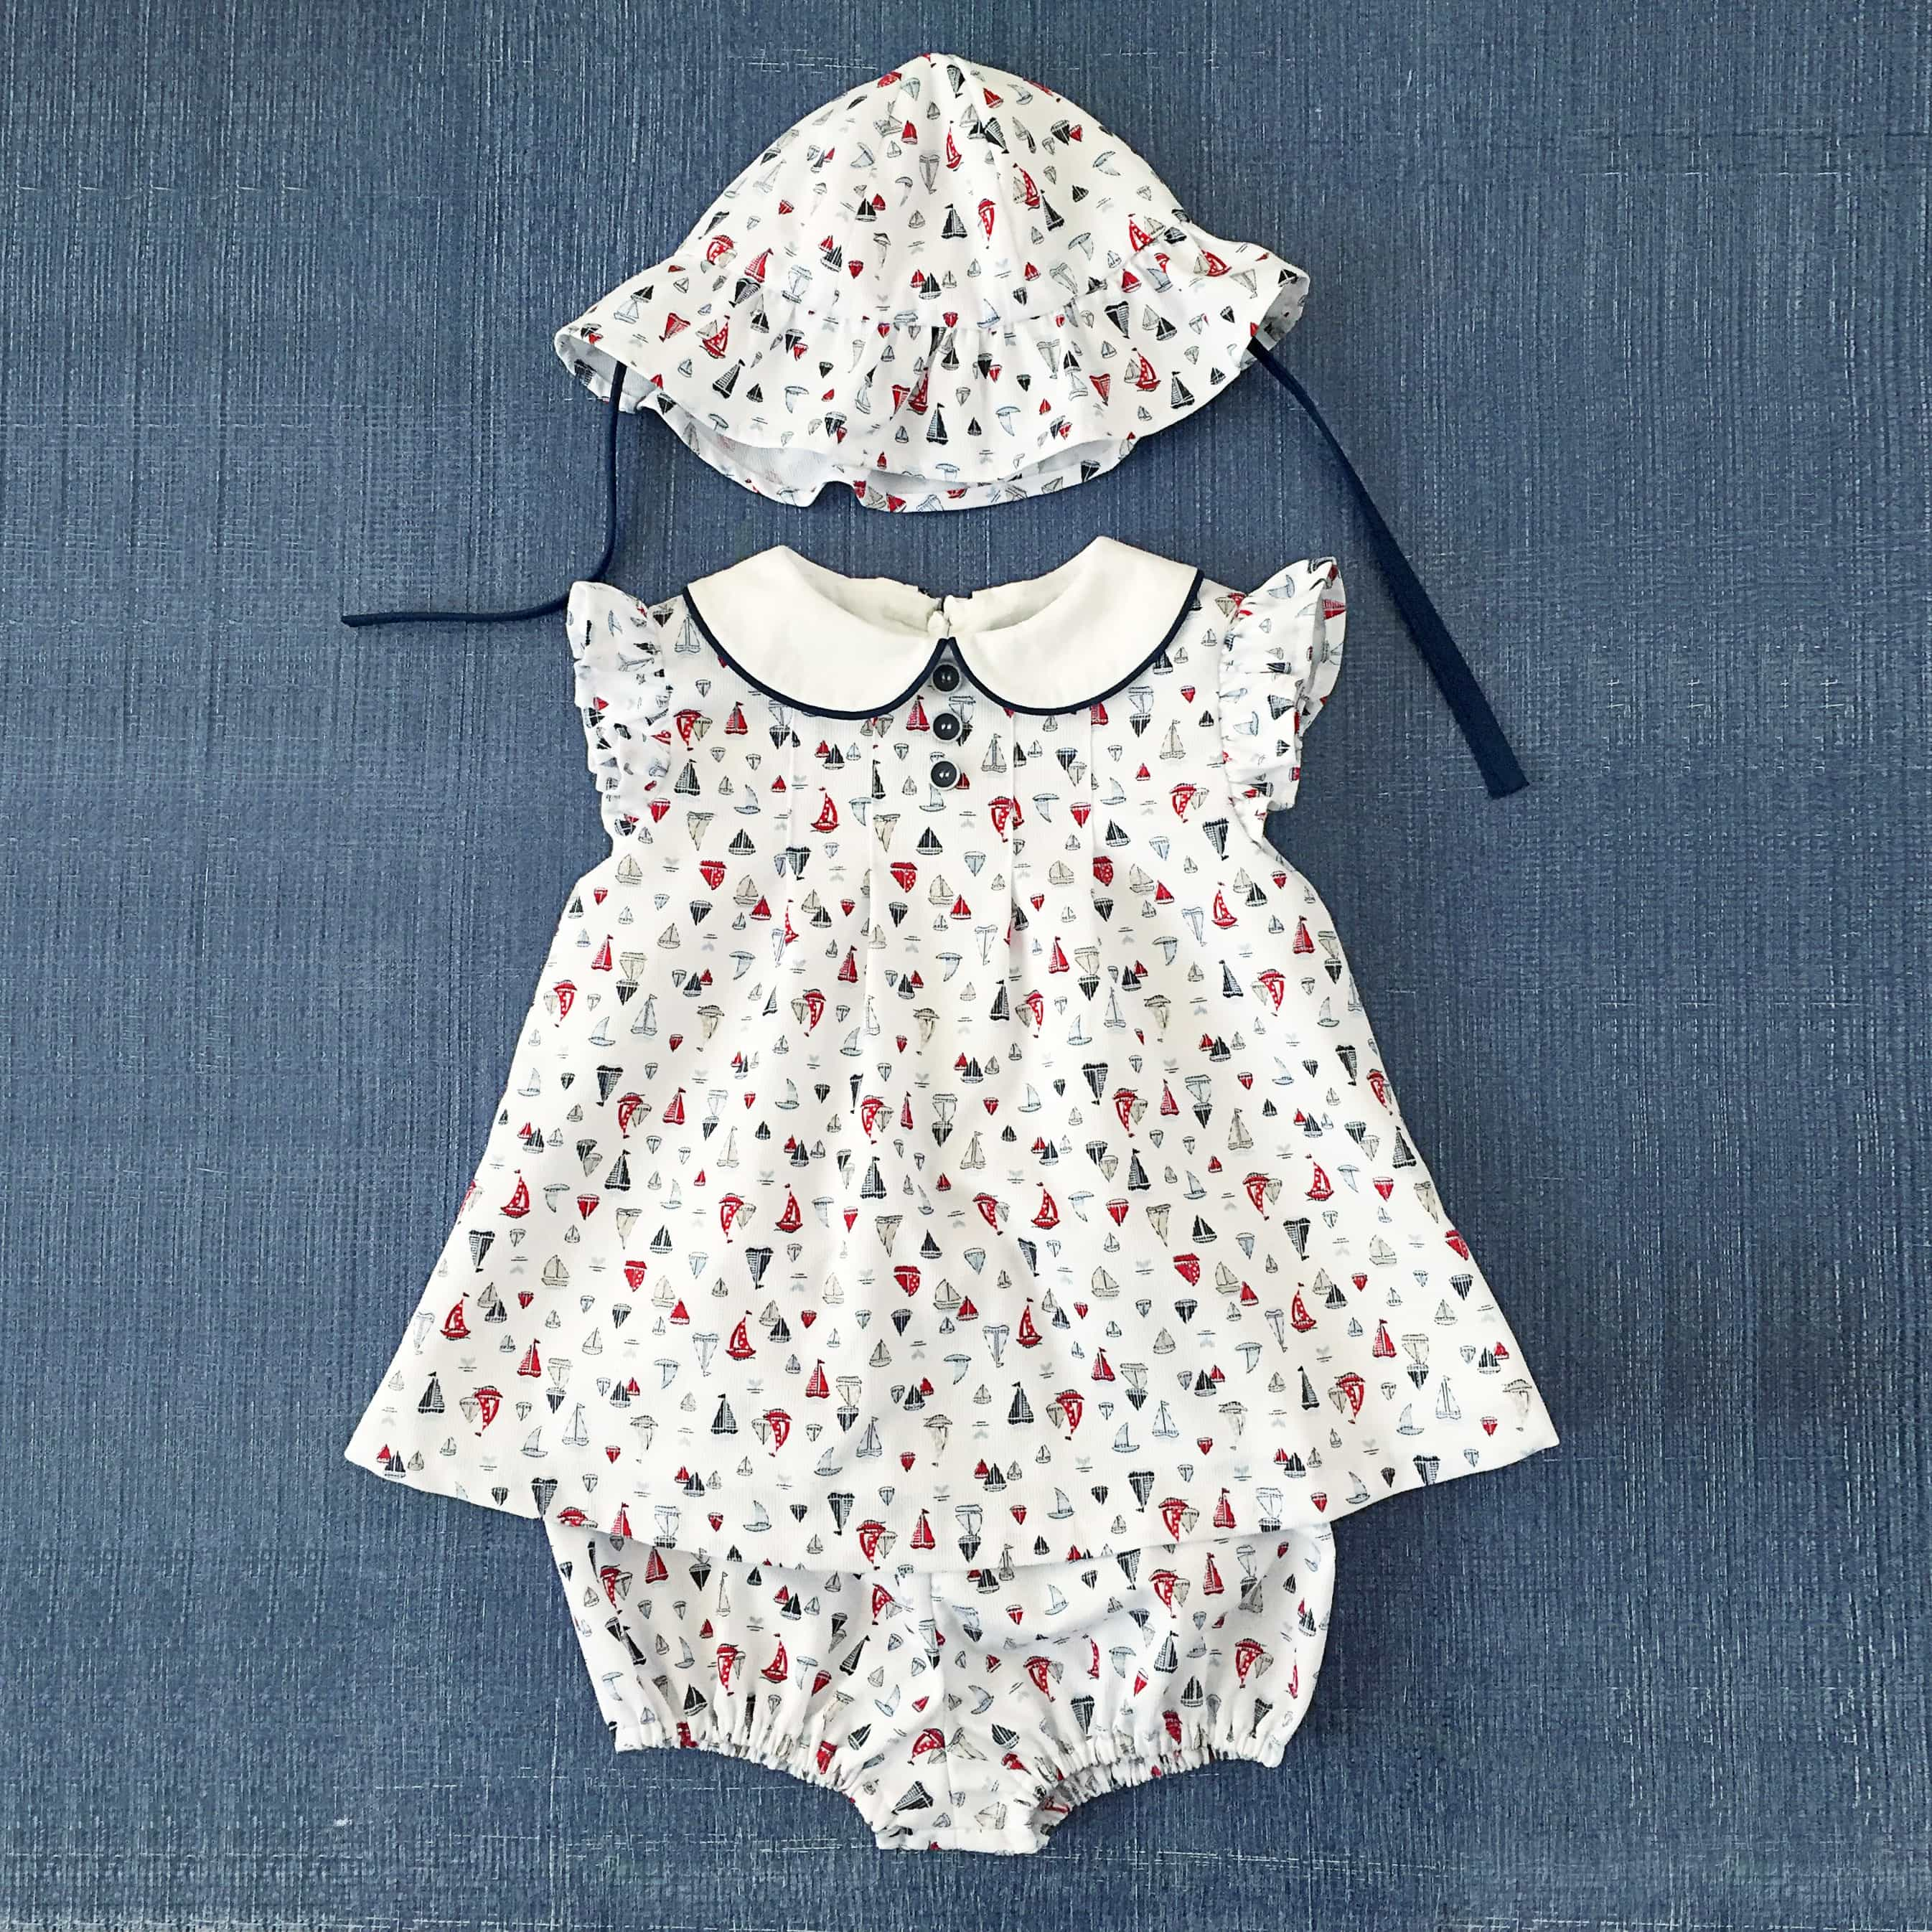 Nautical baby outfit with matching bloomers and bonnet